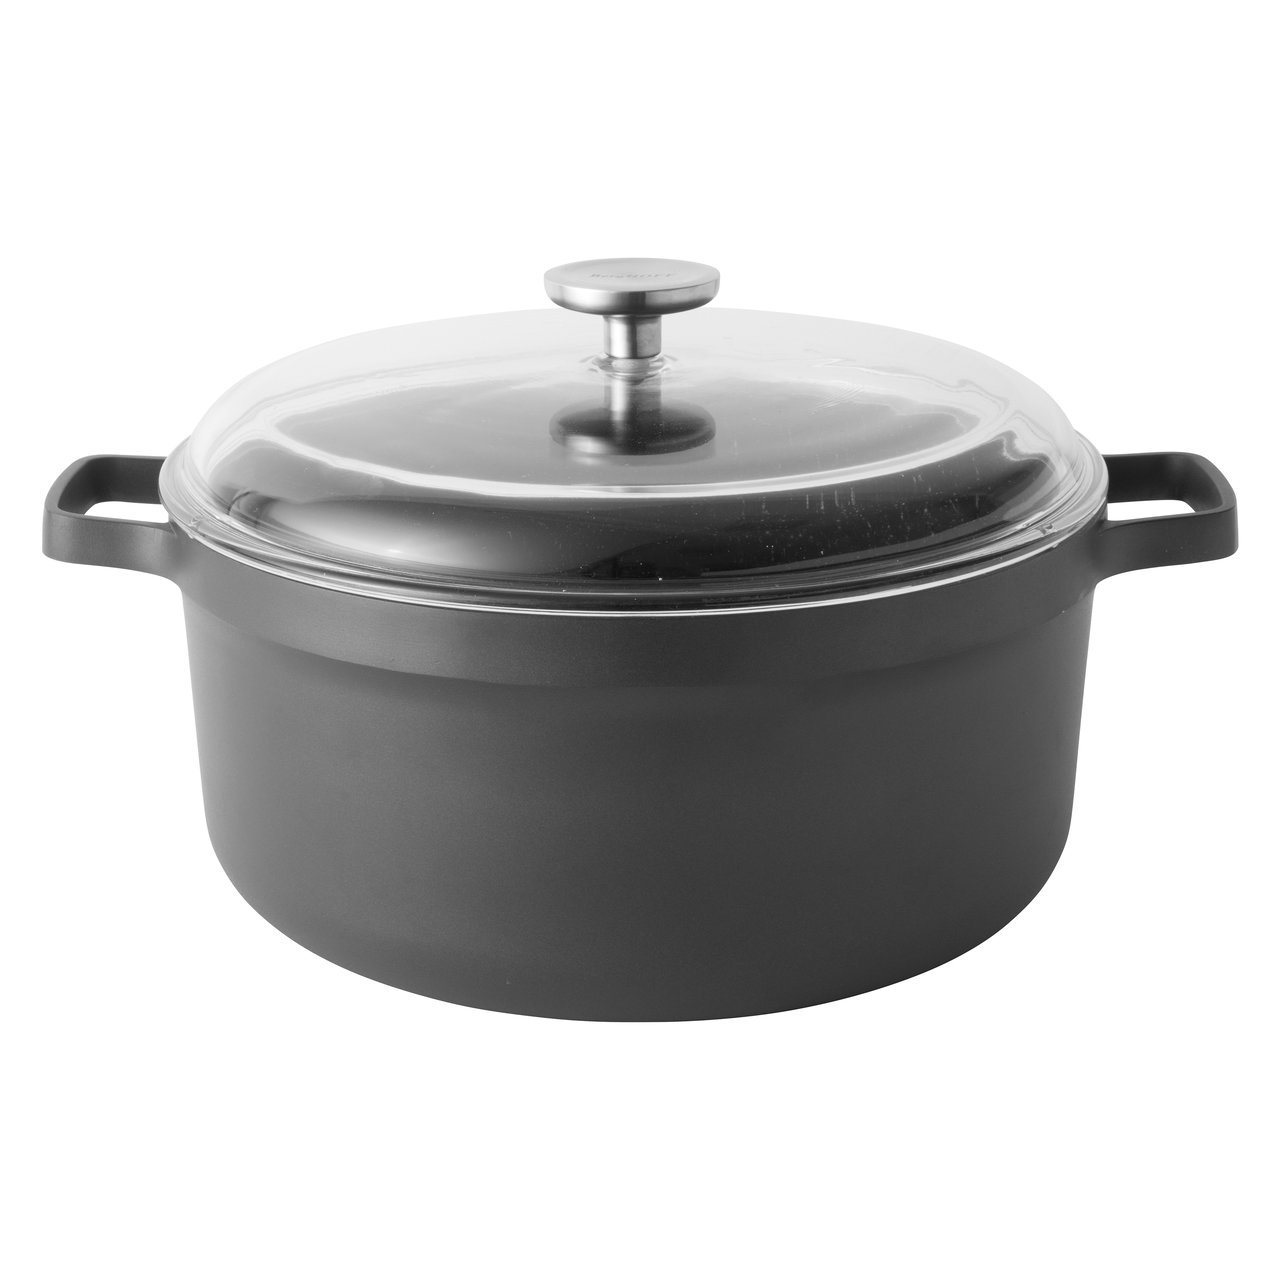 Berghoff Gem Non-Stick Induction-Safe Stockpot with Glass Lid, 36 x 29 x 20 cm, Black